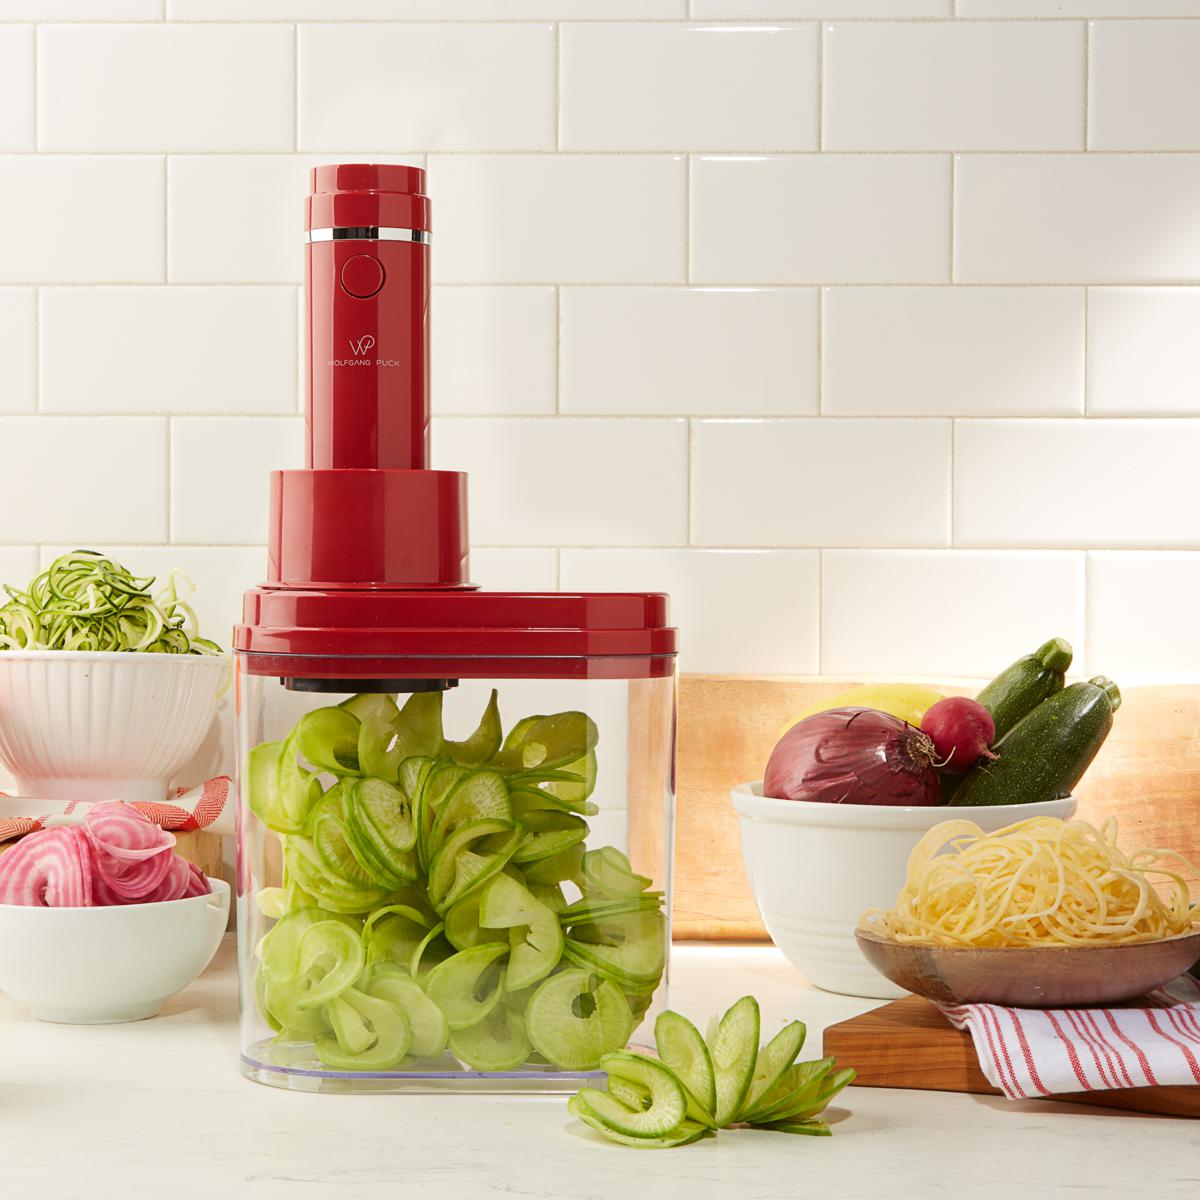 Wolfgang Puck 3-in-1 Electric Power Spiralizer With 3 Blades and Recip